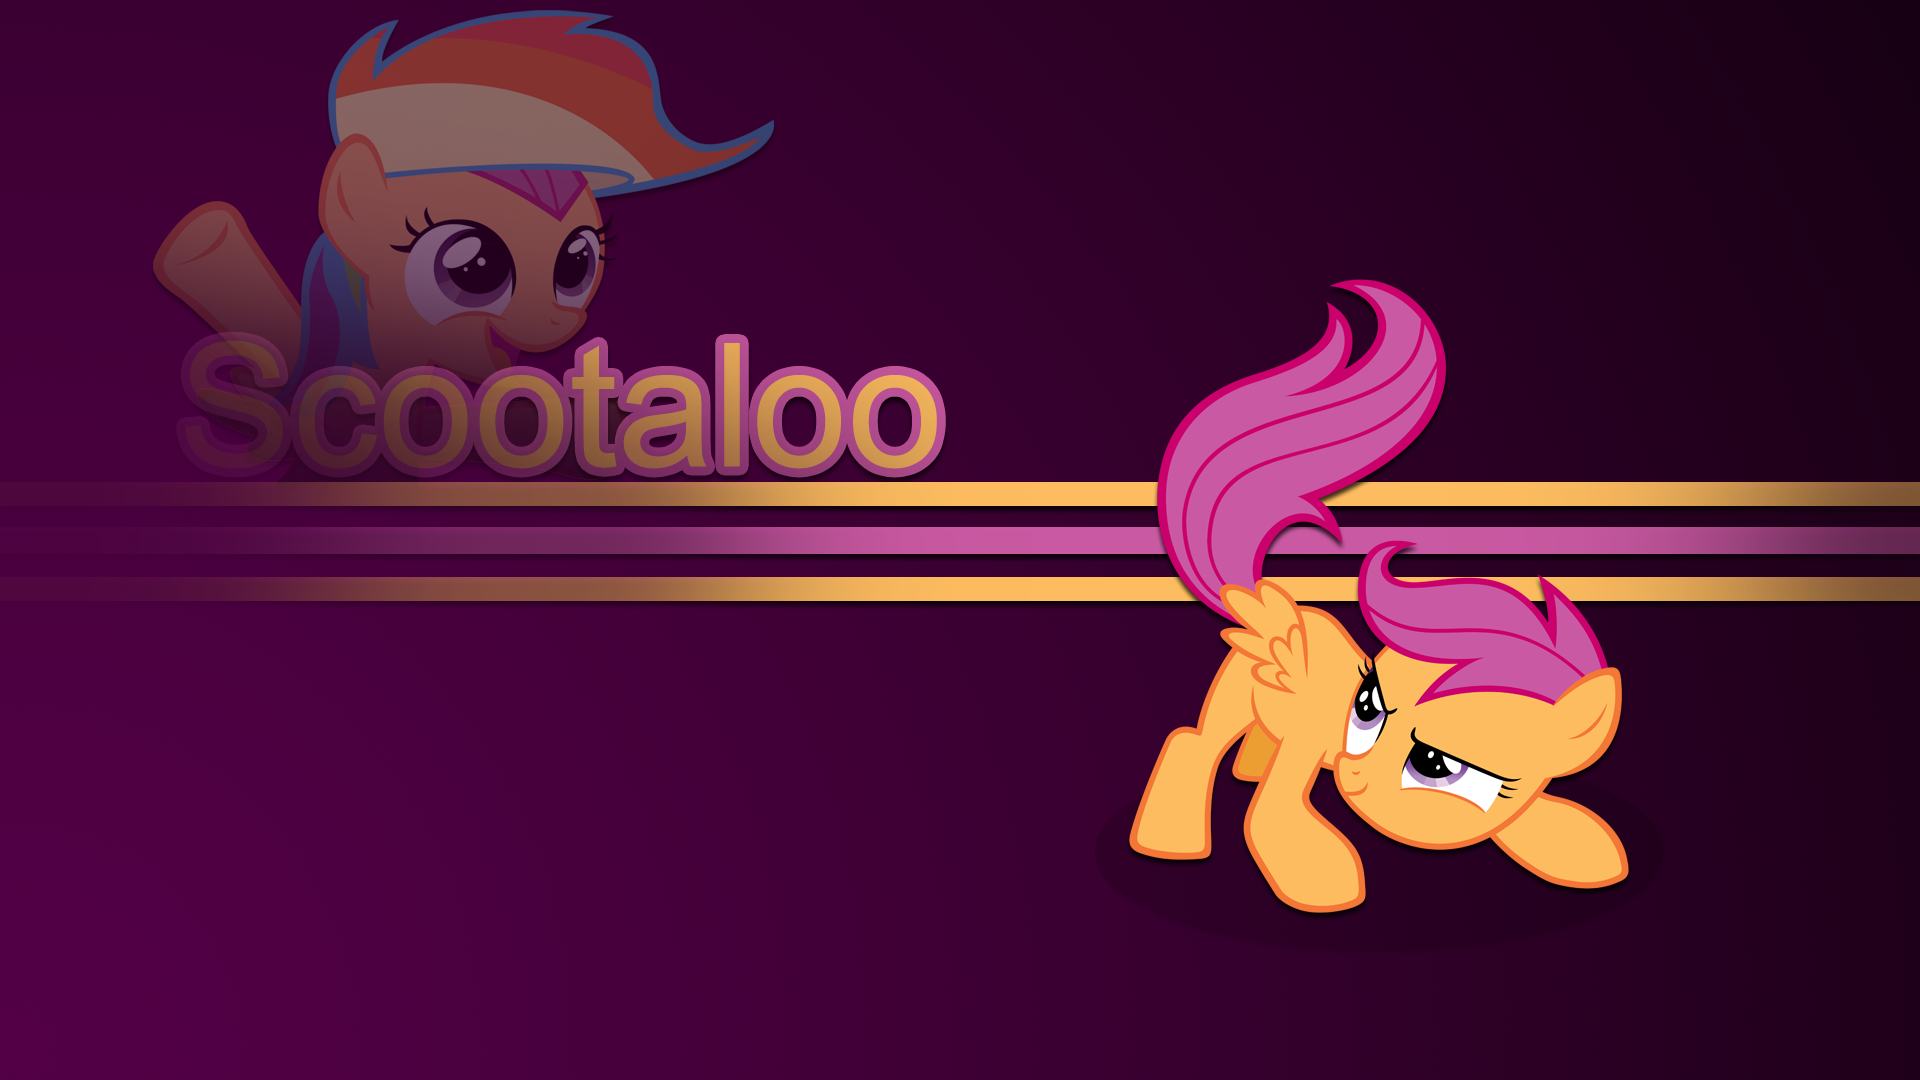 Scootaloo wallpaper by rhubarb-leaf